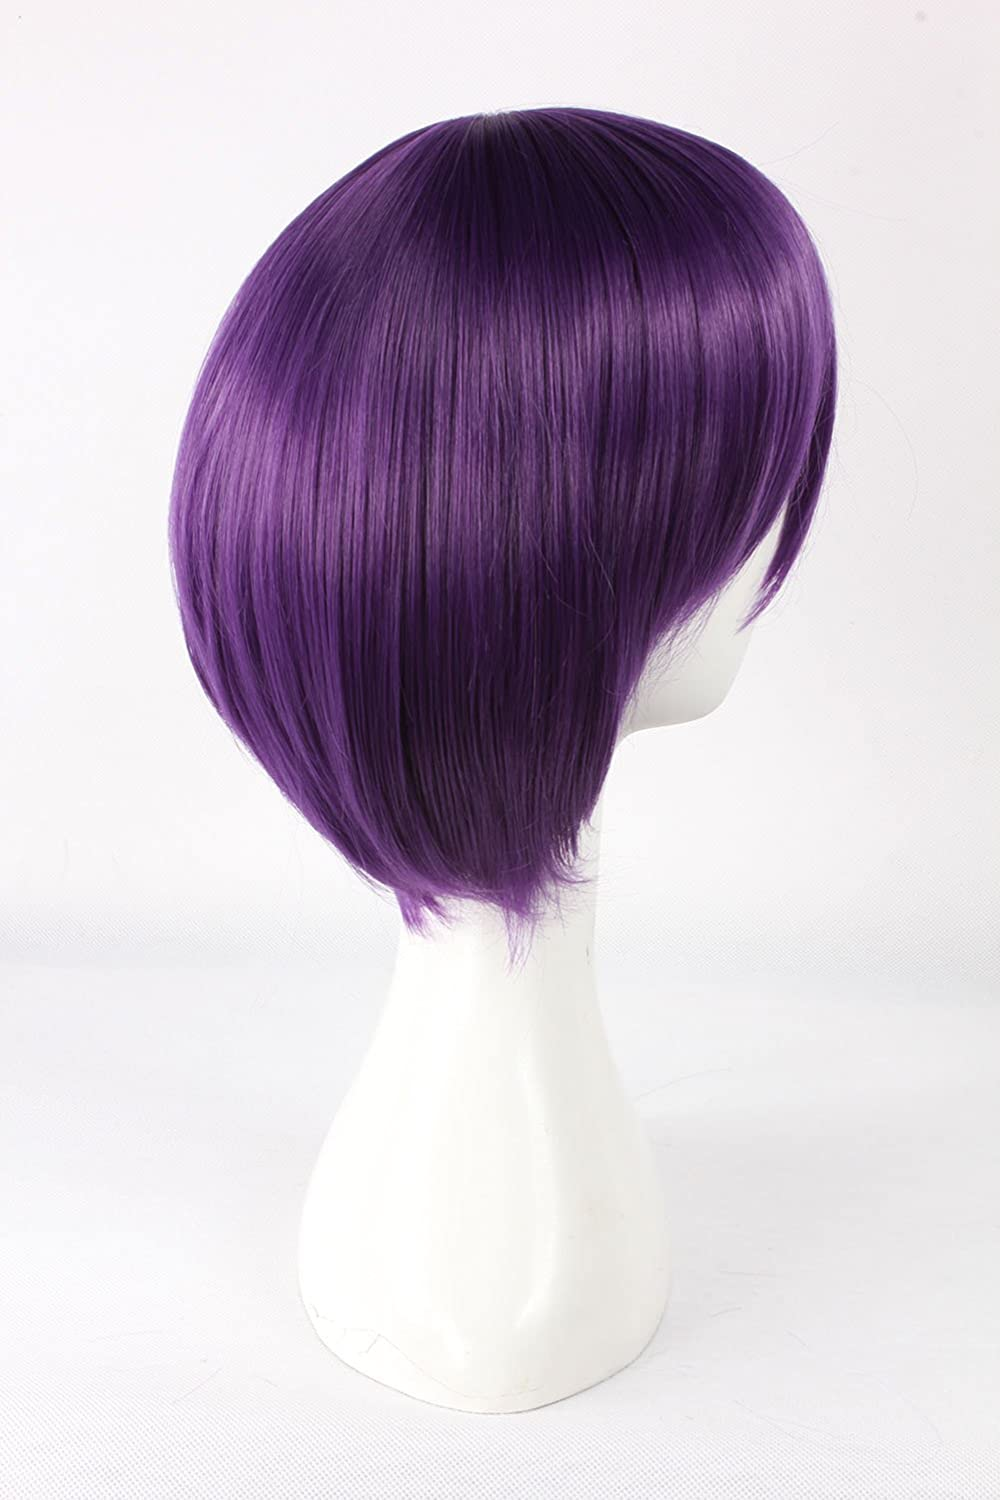 Amazon.com: Uuc Anime Noragami Yato Yaboku Cosplay Wig Gintama Takasugi Shinsuke Purple Short Straight Hair: Beauty